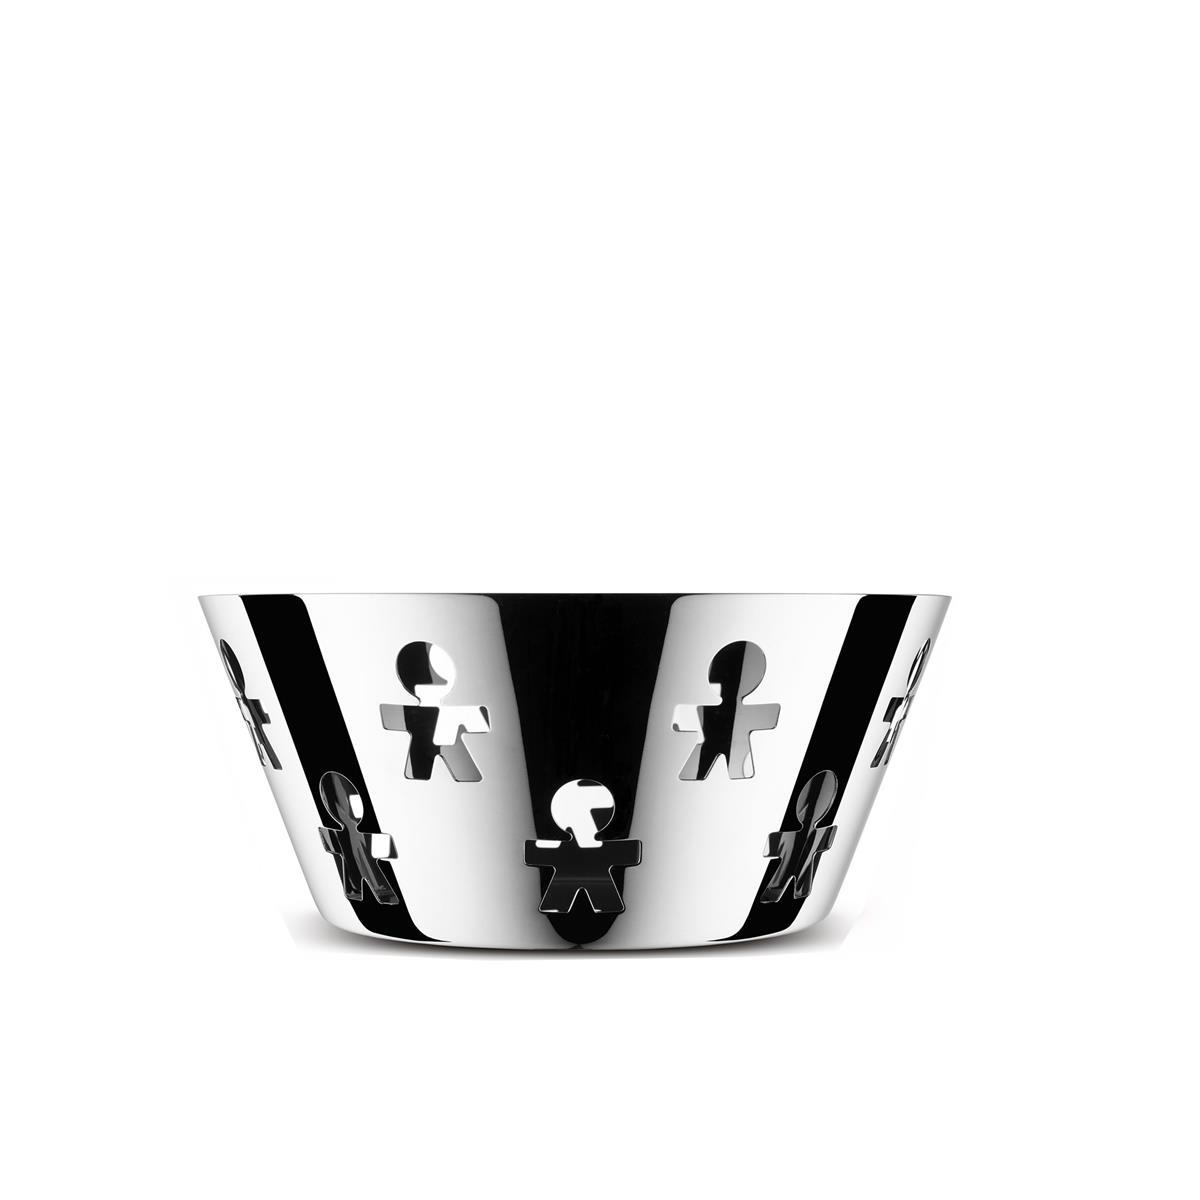 Alessi-Girotondo Perforated basket in 18/10 stainless steel